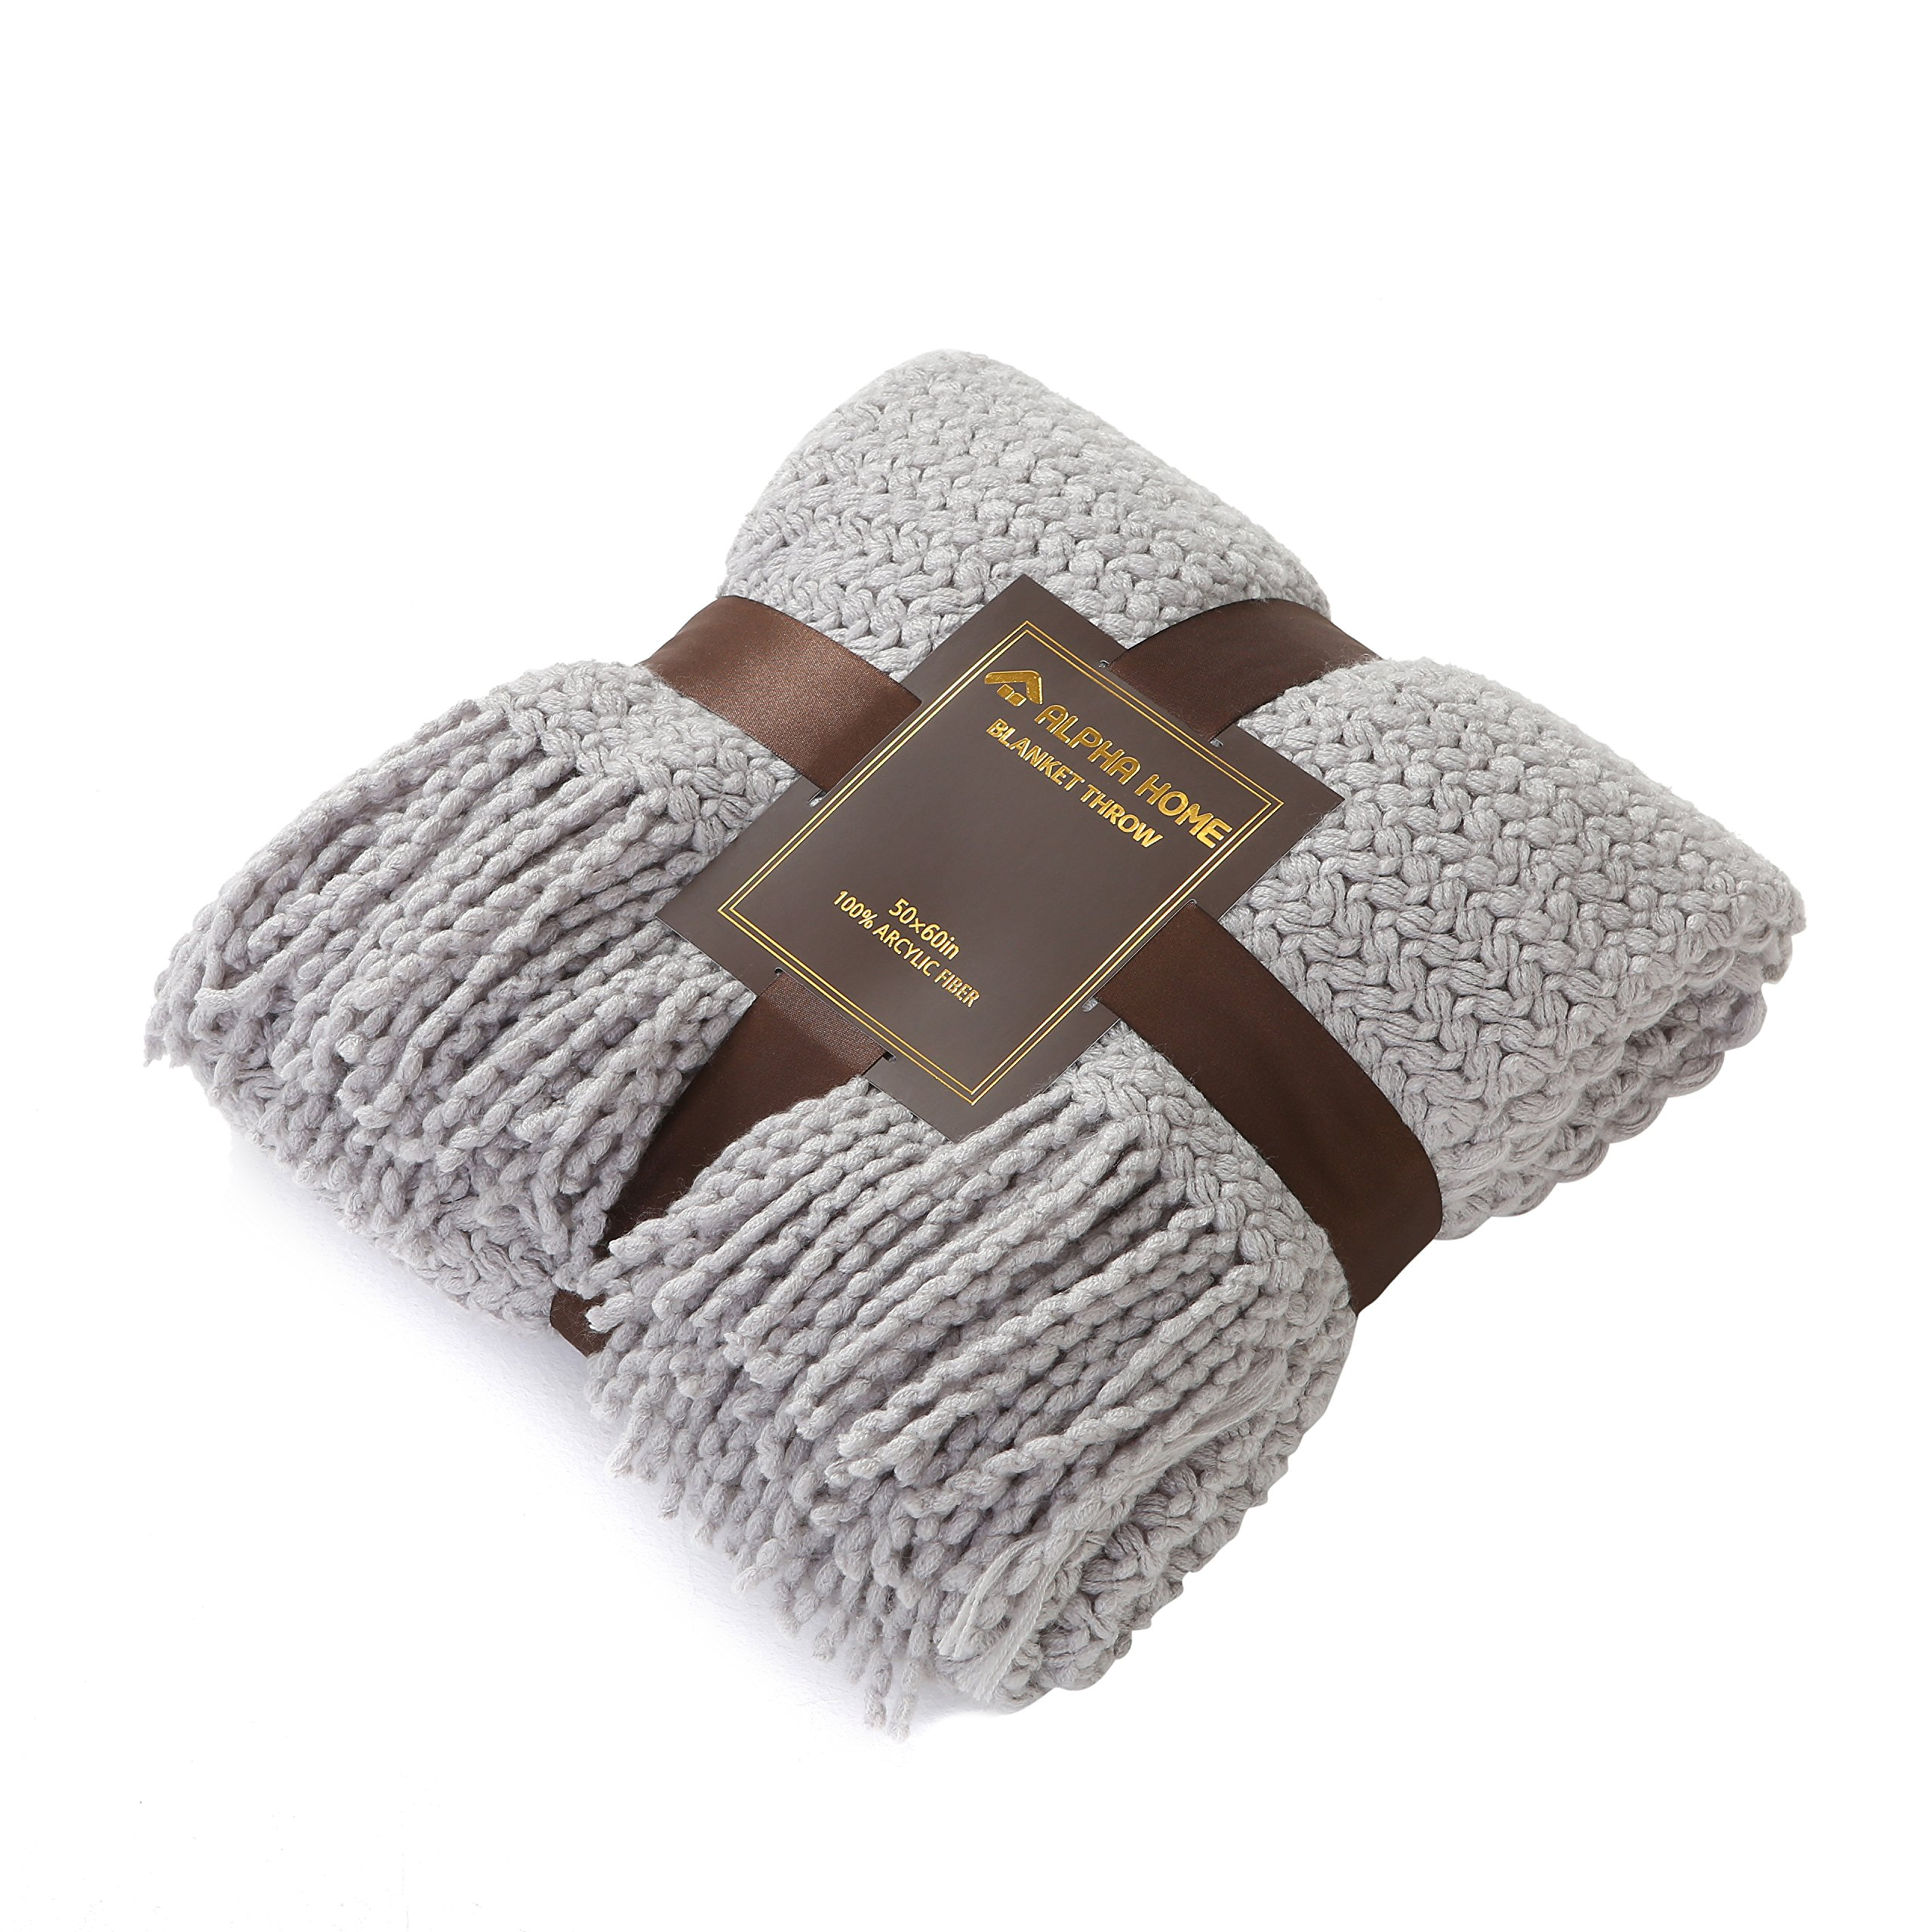 ALPHA HOME Knit Throw Blanket Warm & Cozy for Couch Sofa Bed Beach Travel - 50'' x 60'', Light Gray